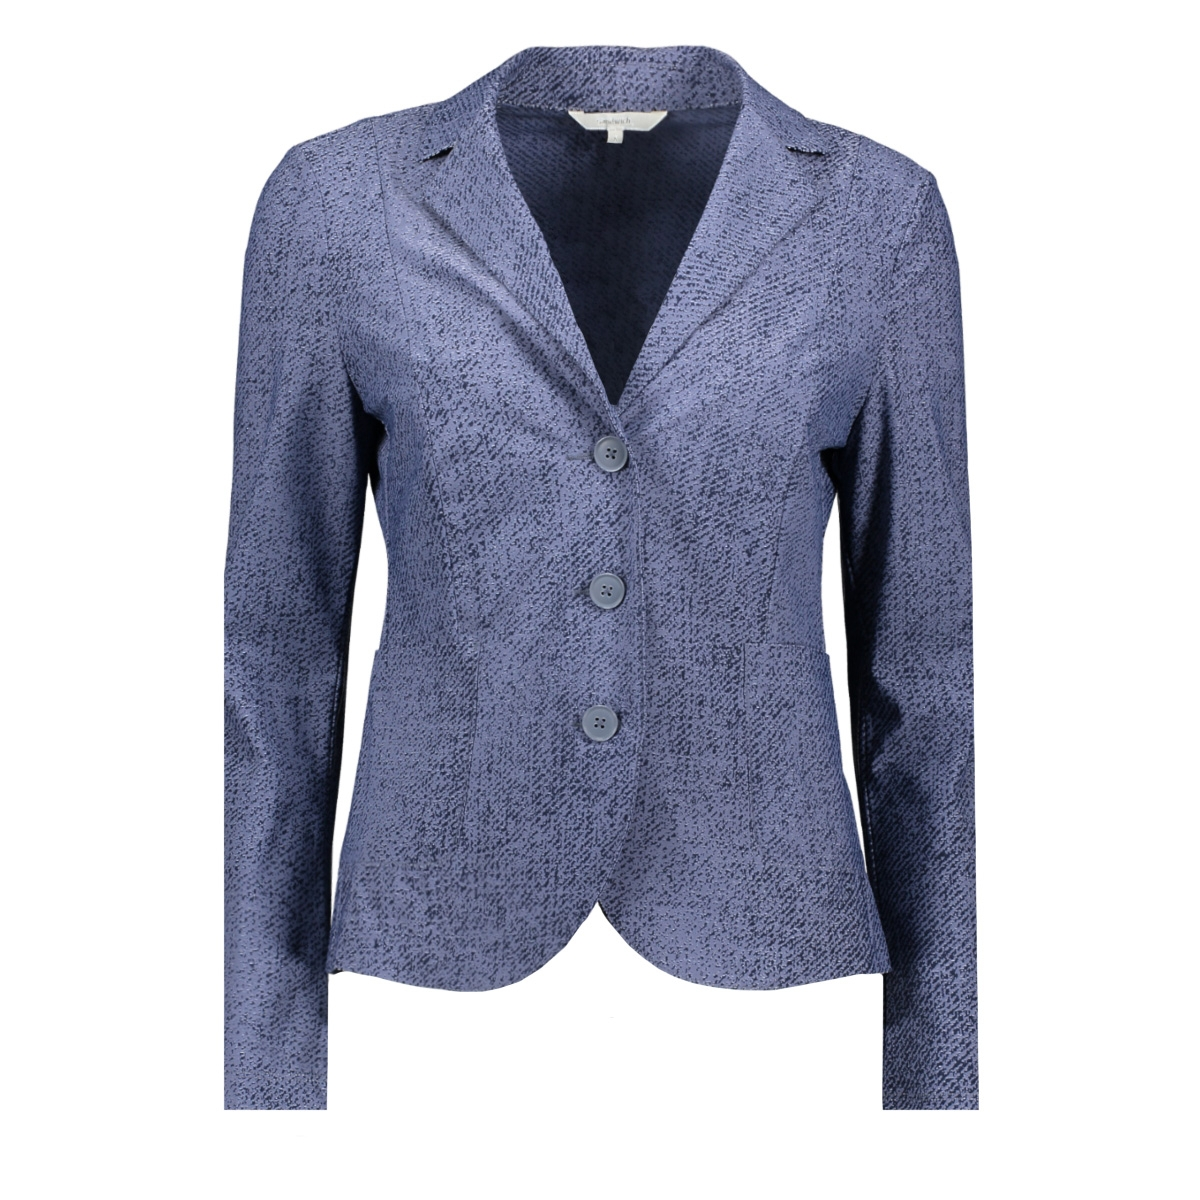 blazer 25001582 sandwich blazer 41027 blue grey